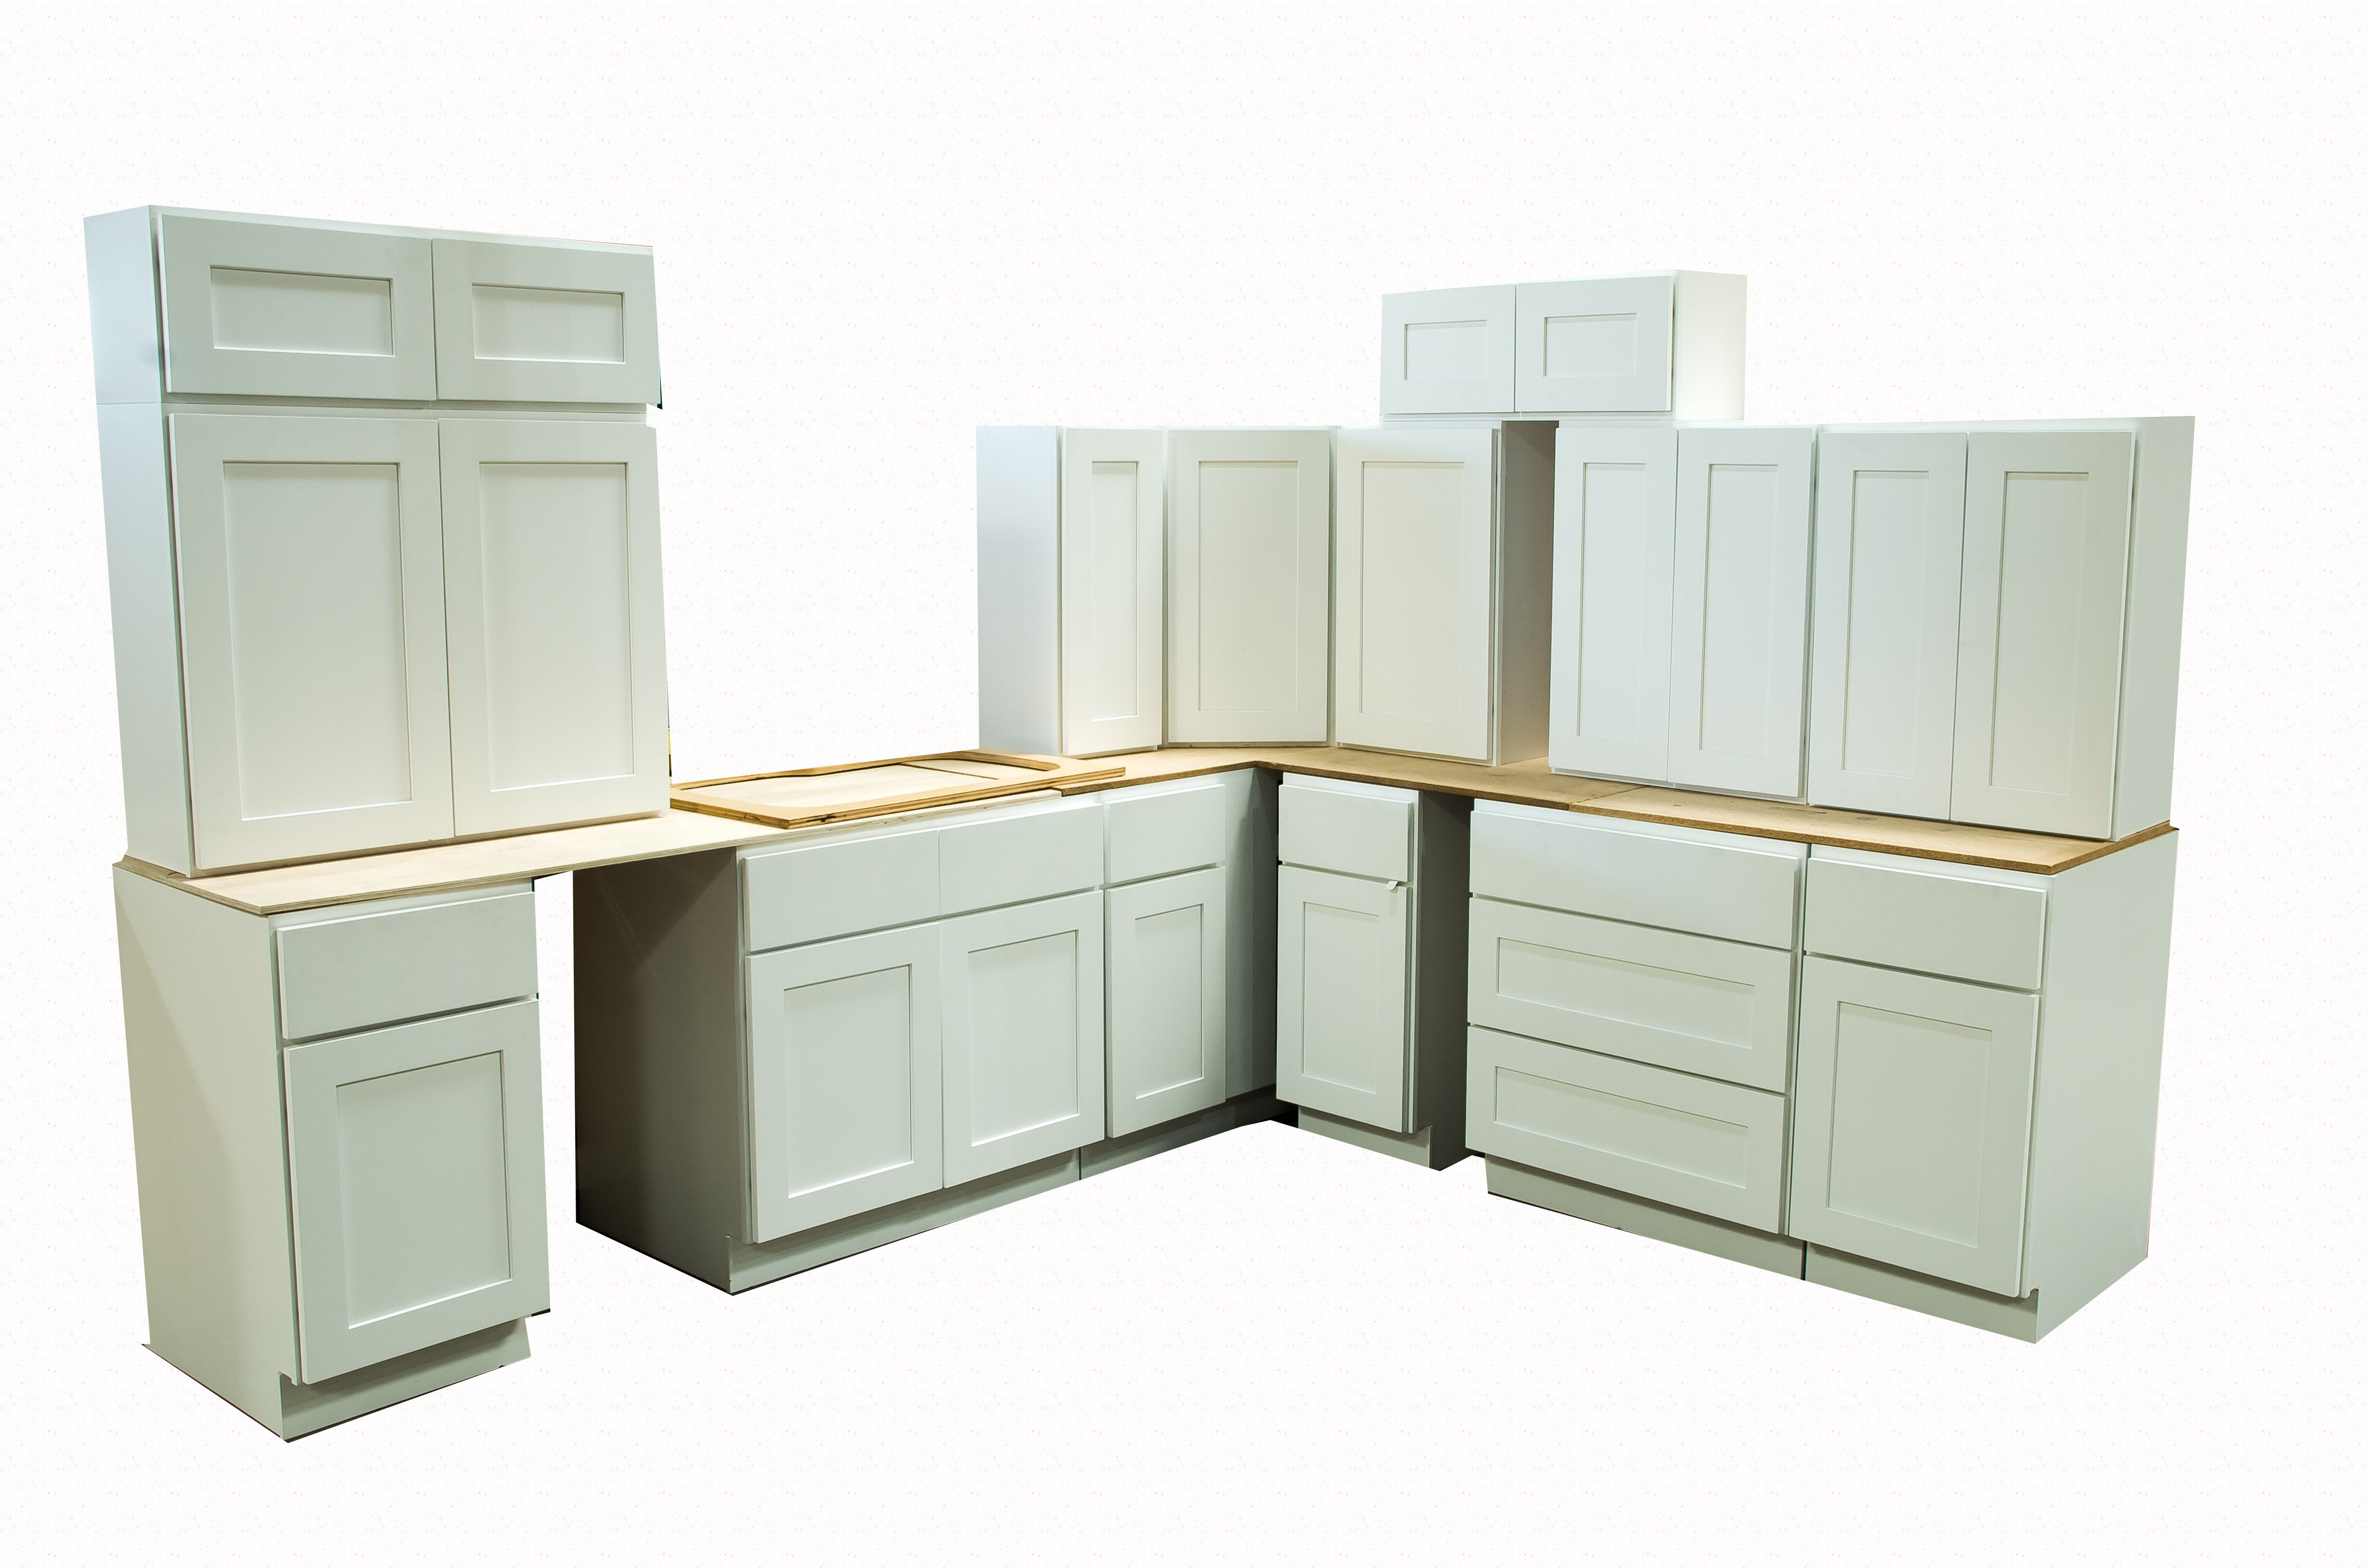 cabinetoutlet kitchen cabinet outlet SHAKER WHITE DISPLAY SALE TAX